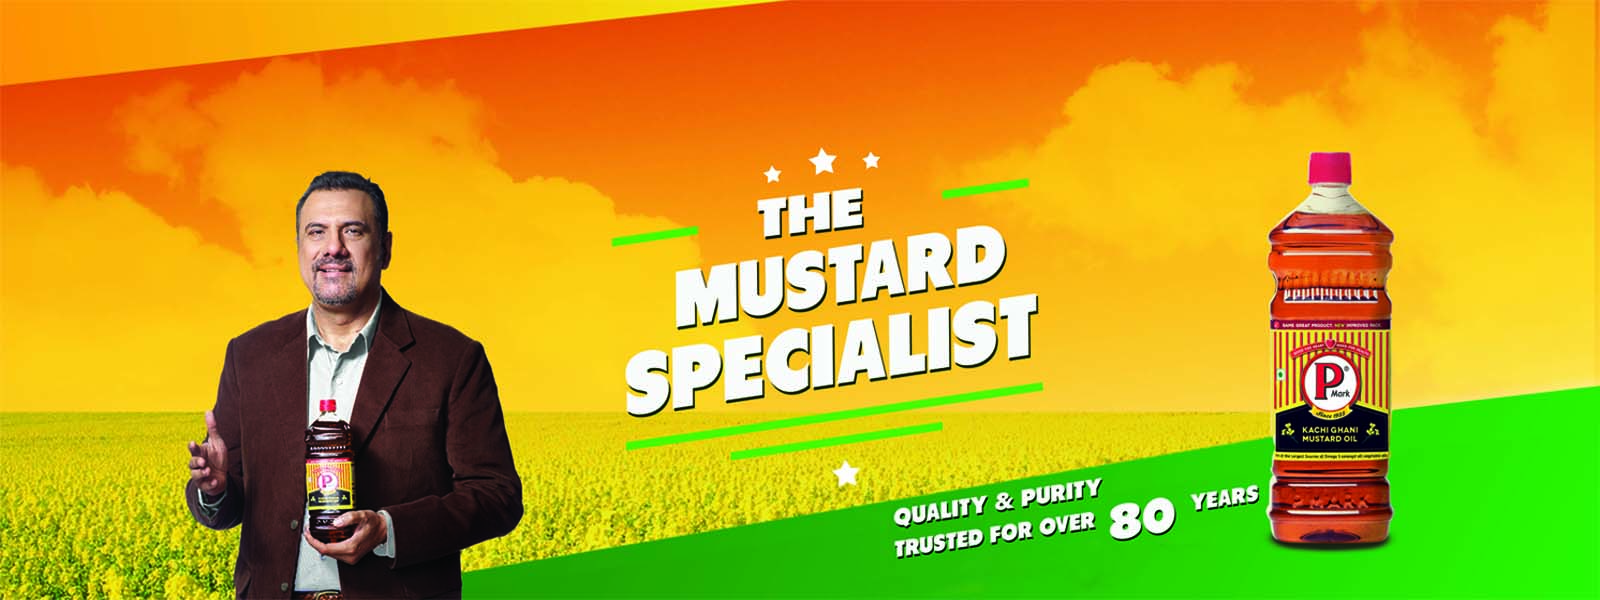 The Mustard Specialist